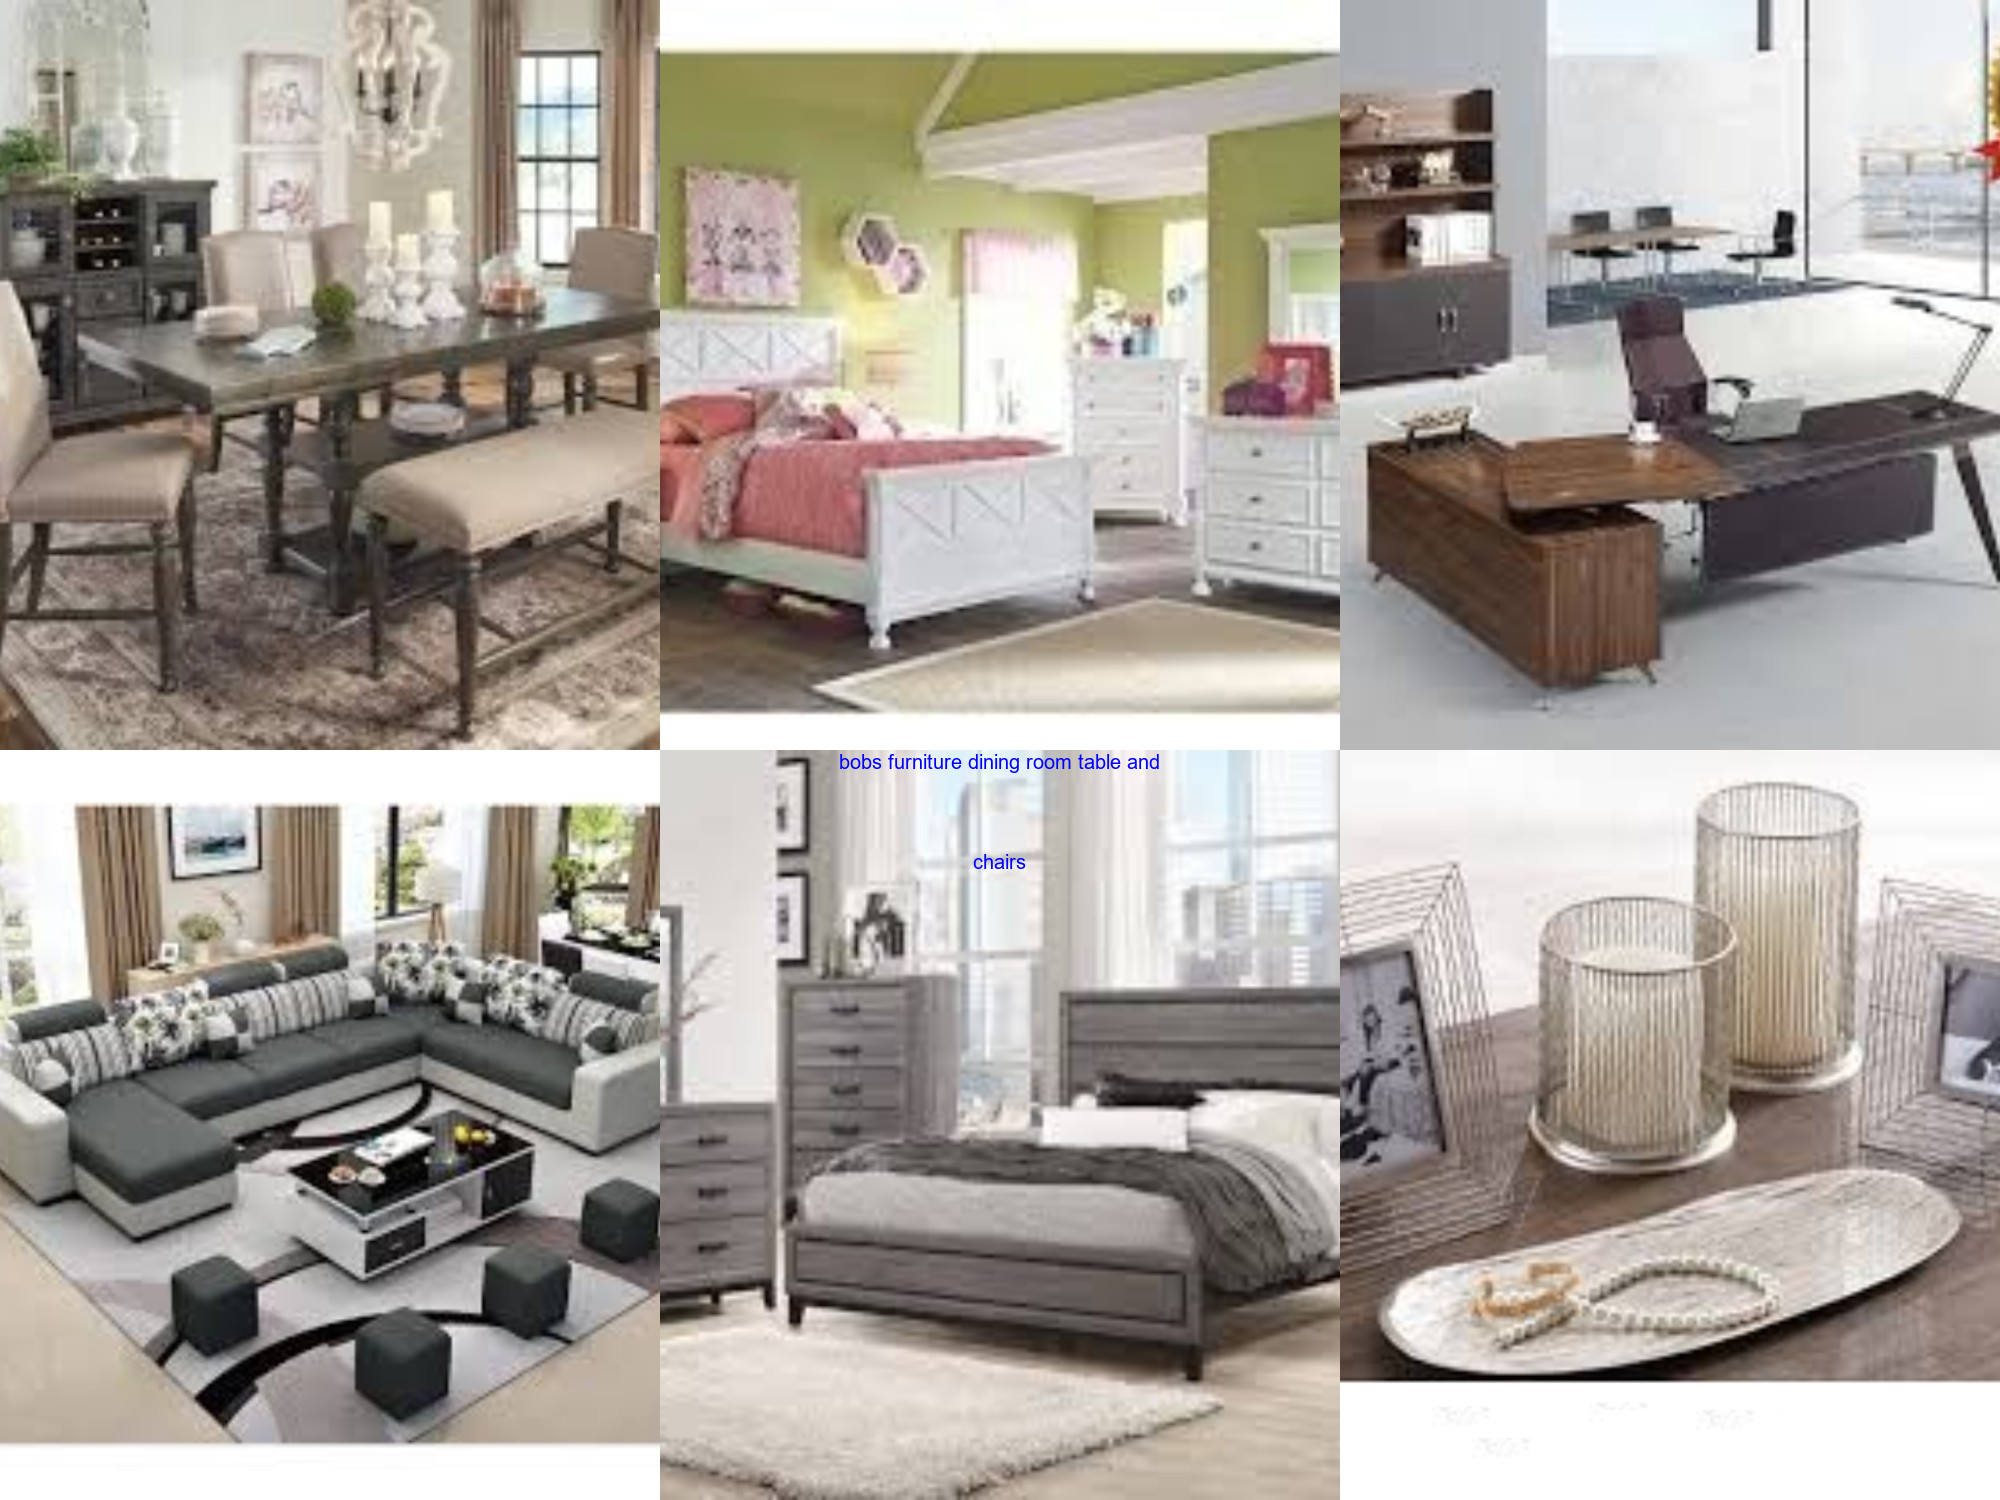 Bobs Furniture Dining Room Table And Chairs In 2020 Furniture